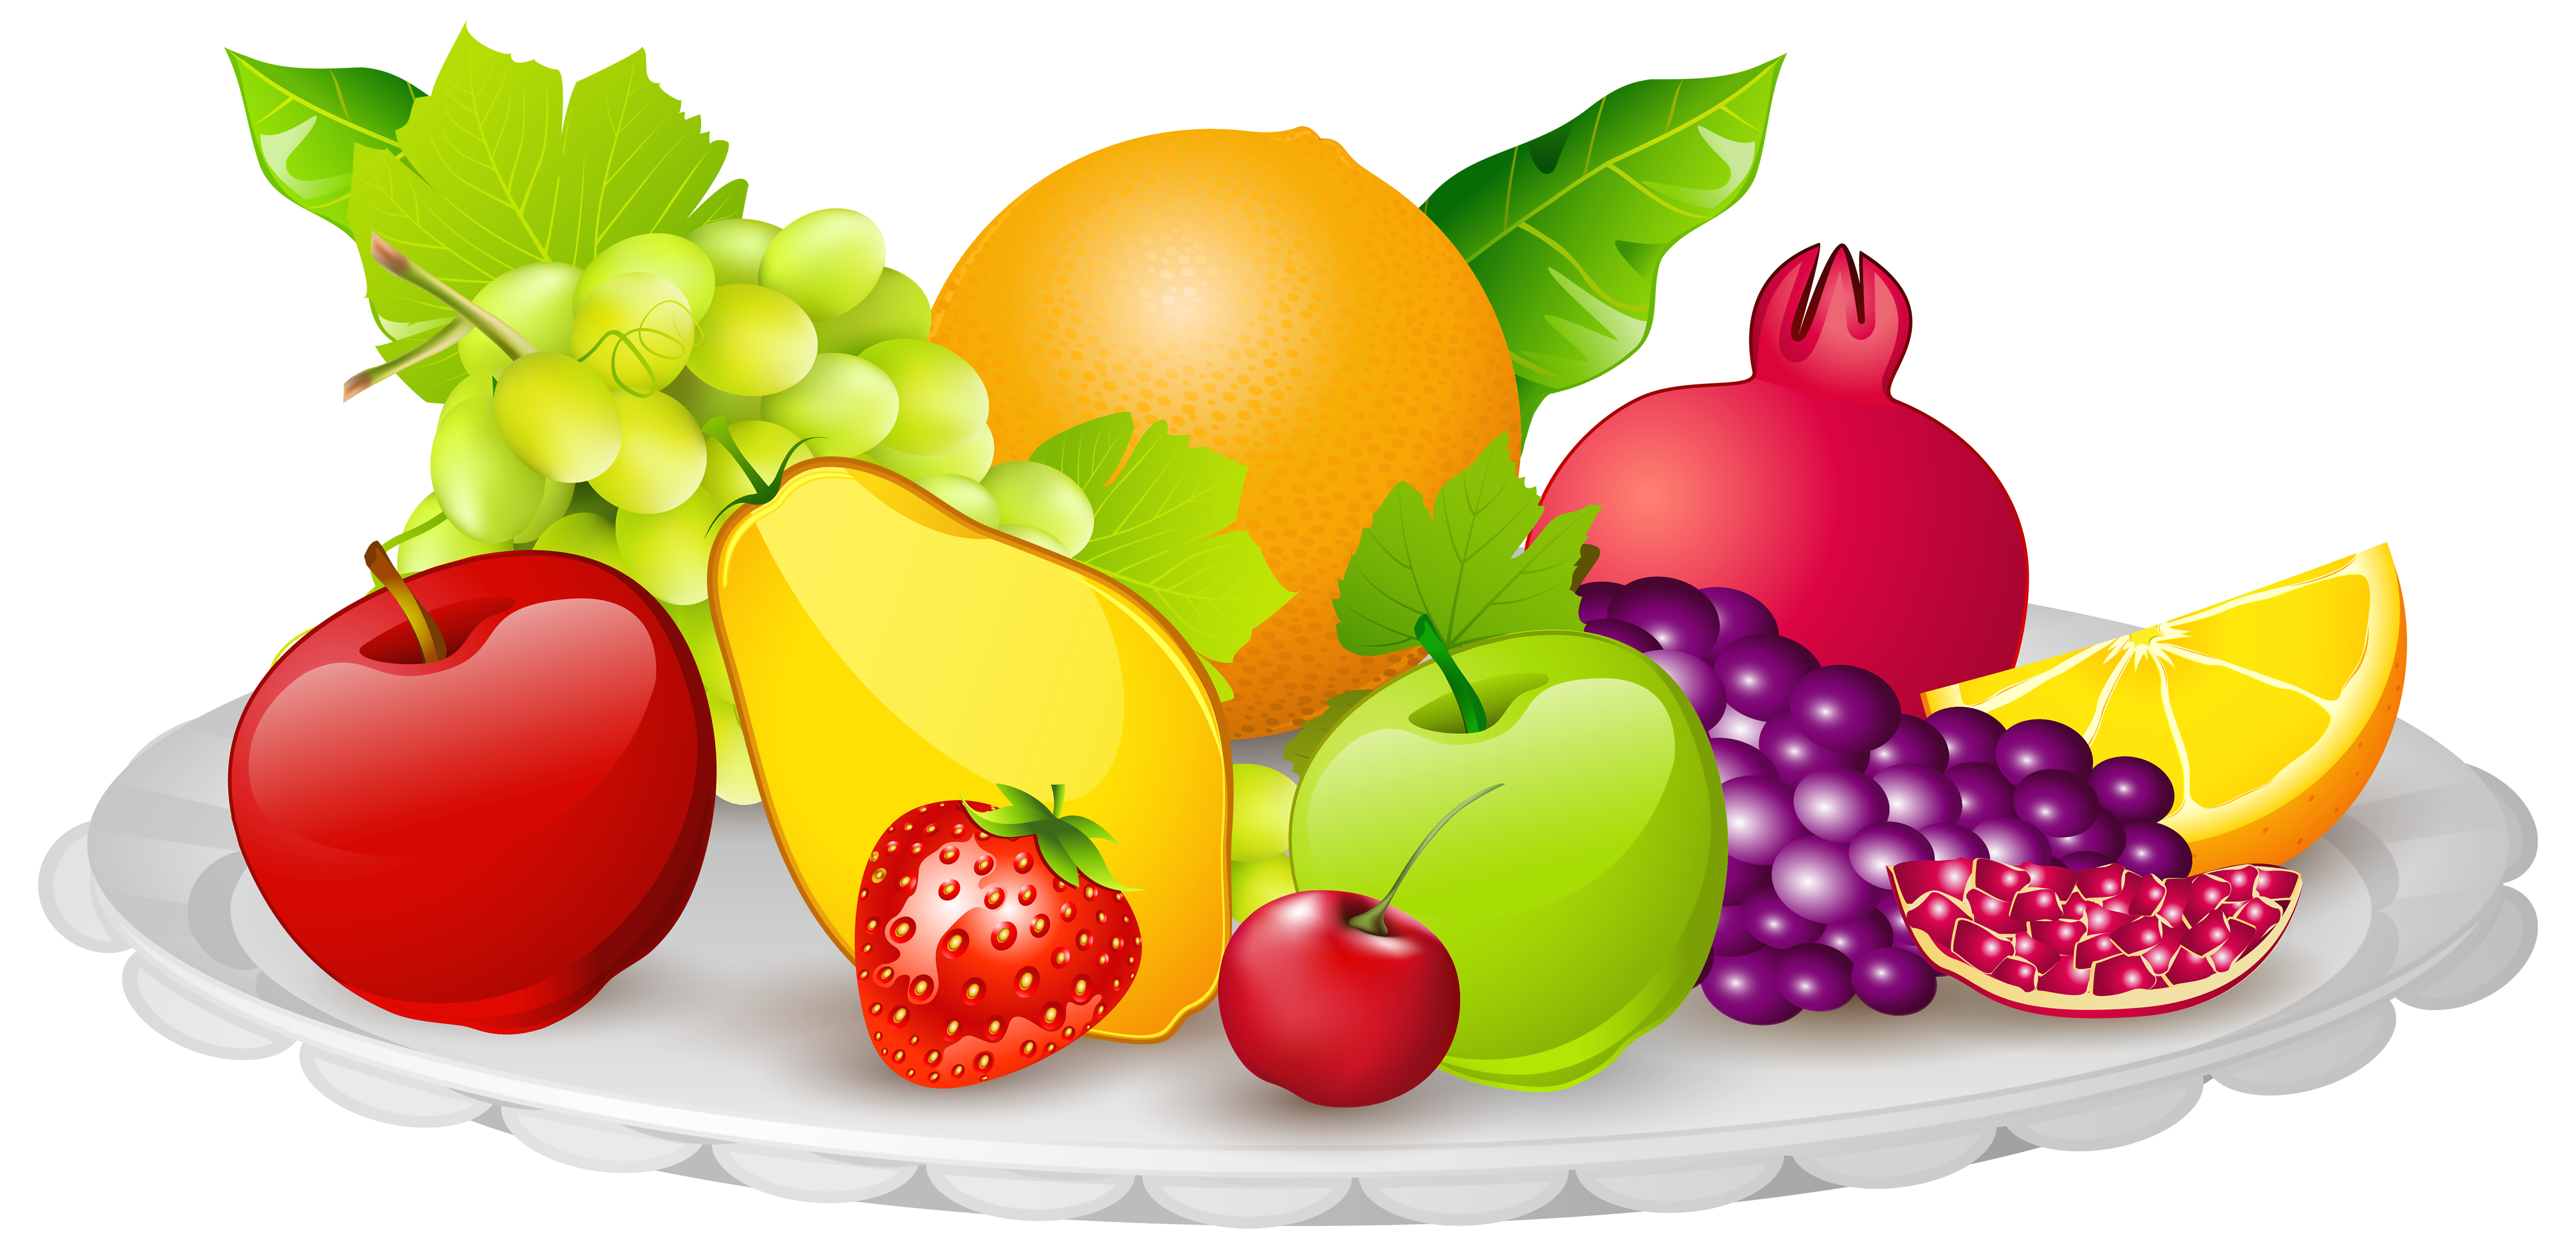 Fruit clip art png. Plate with fruits clipart